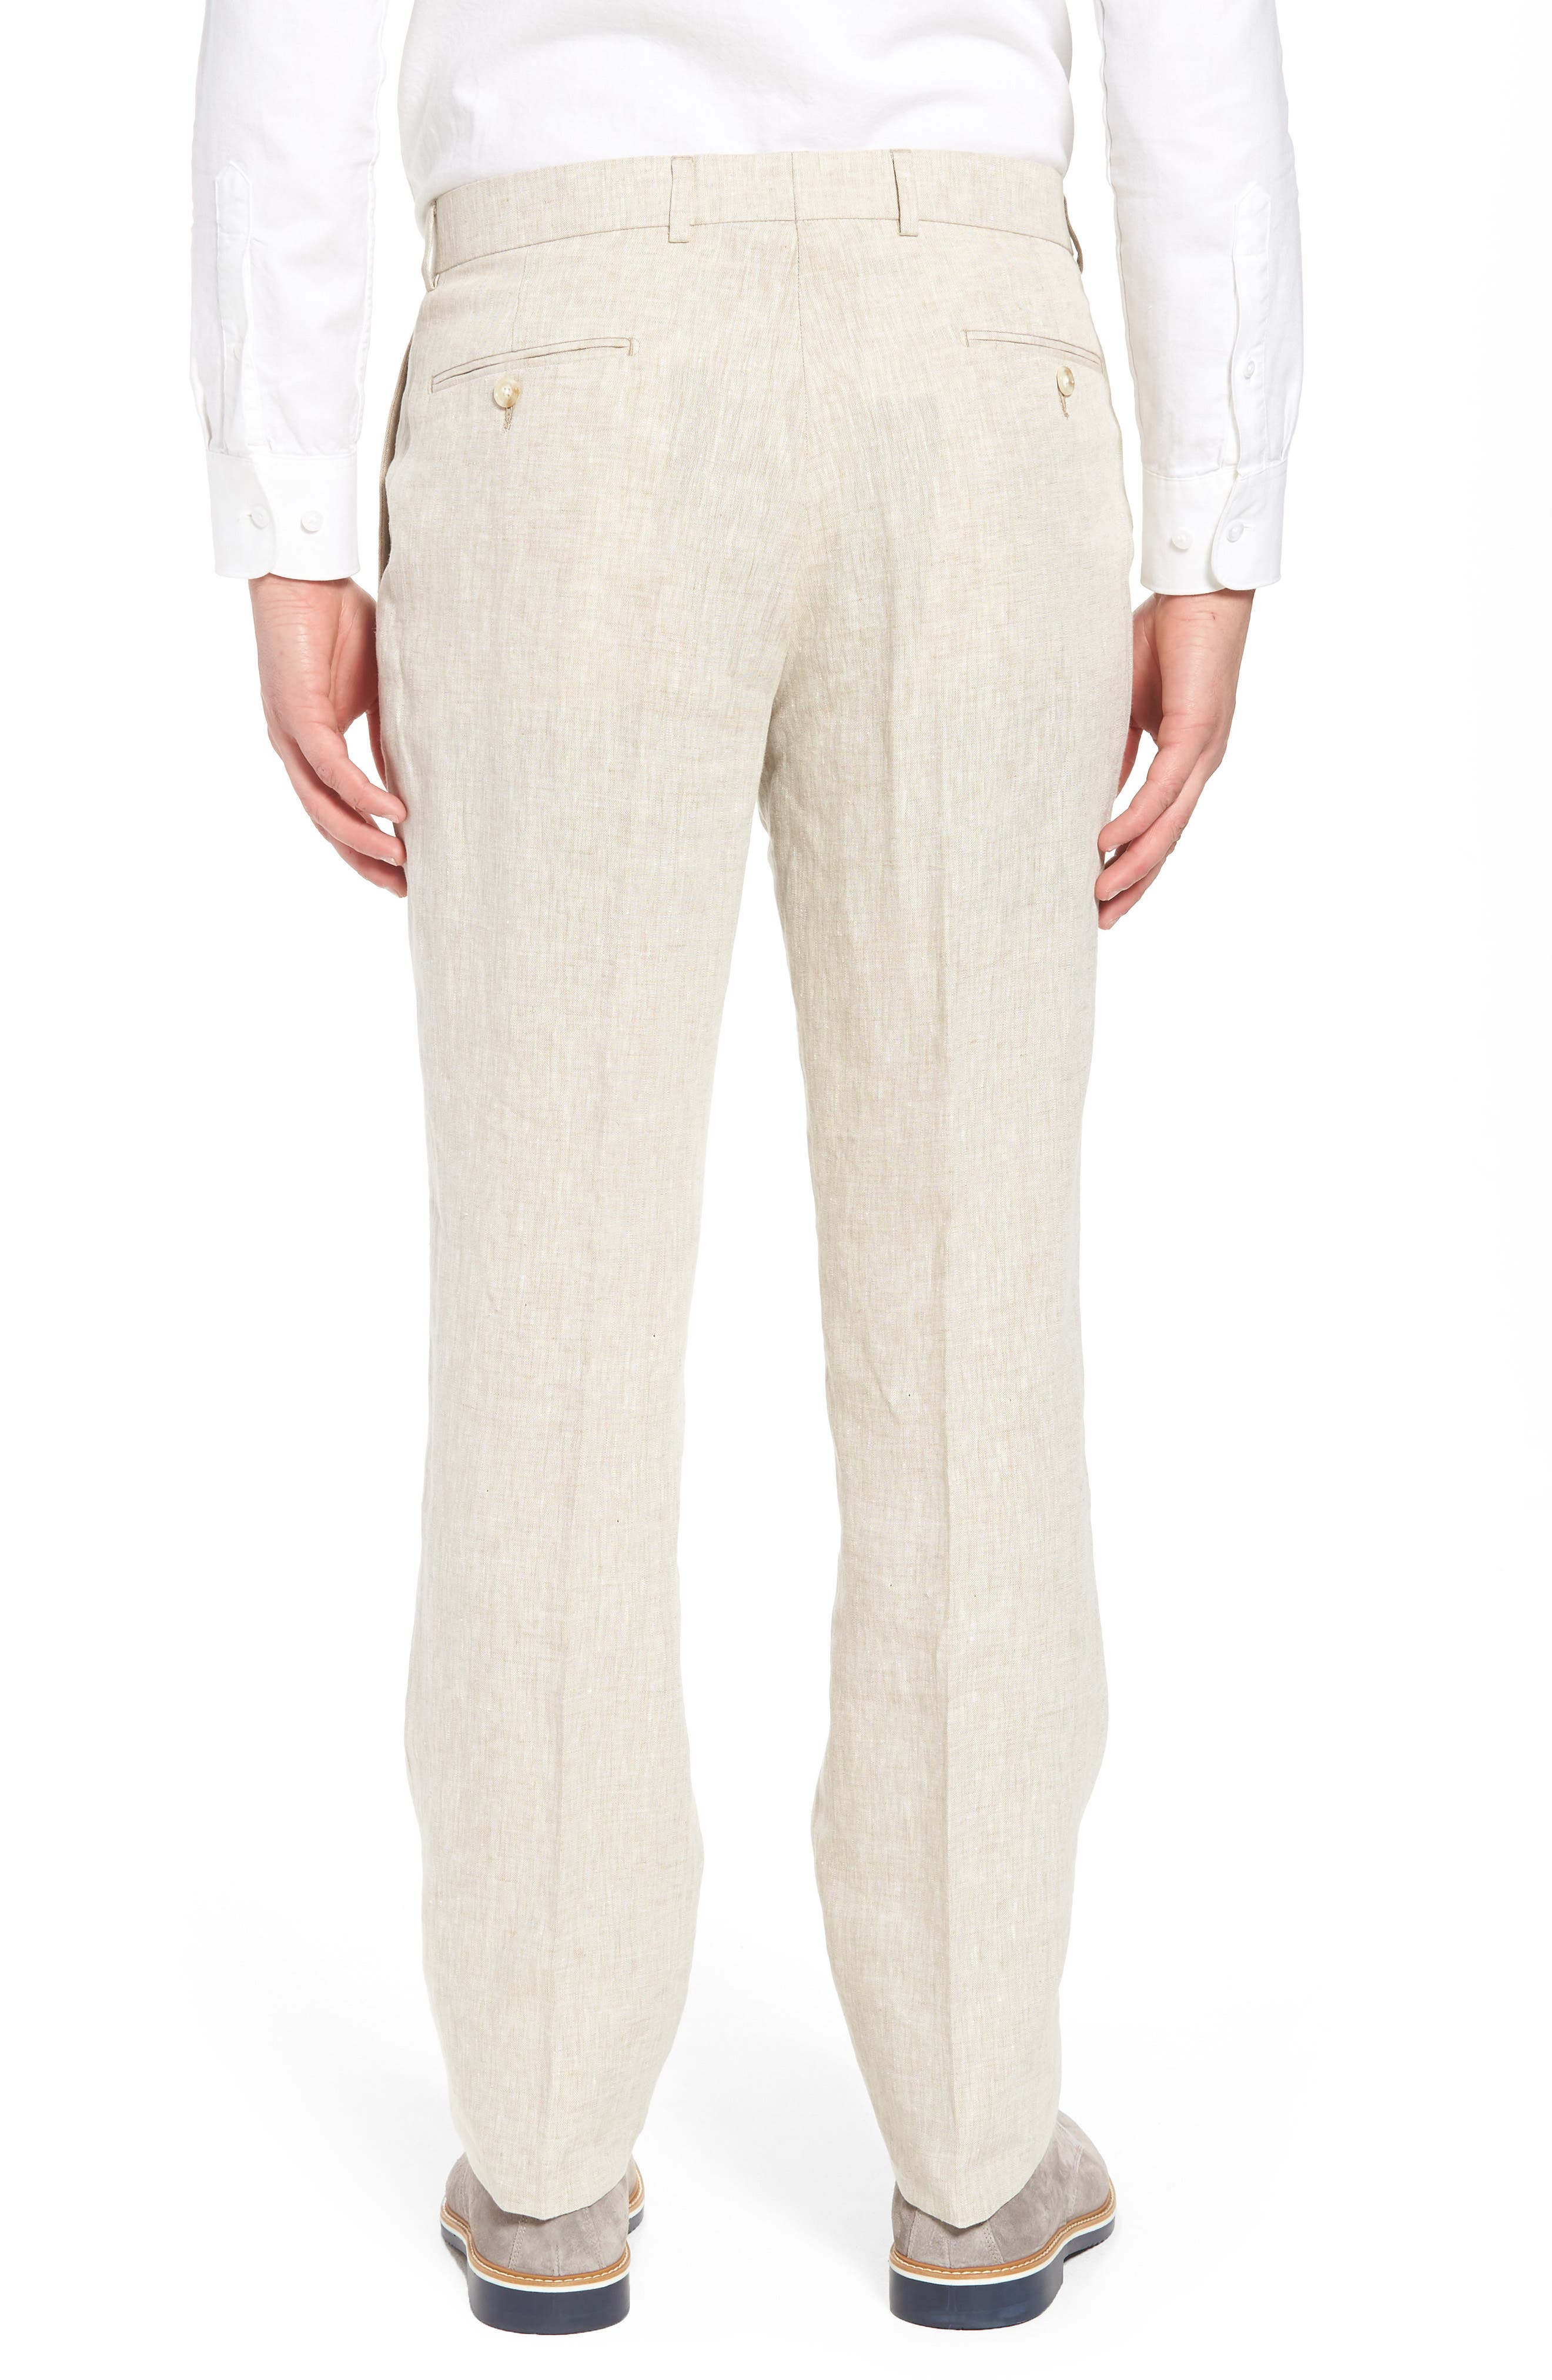 Andrew AIM Flat Front Linen Trousers,                             Alternate thumbnail 2, color,                             Natural